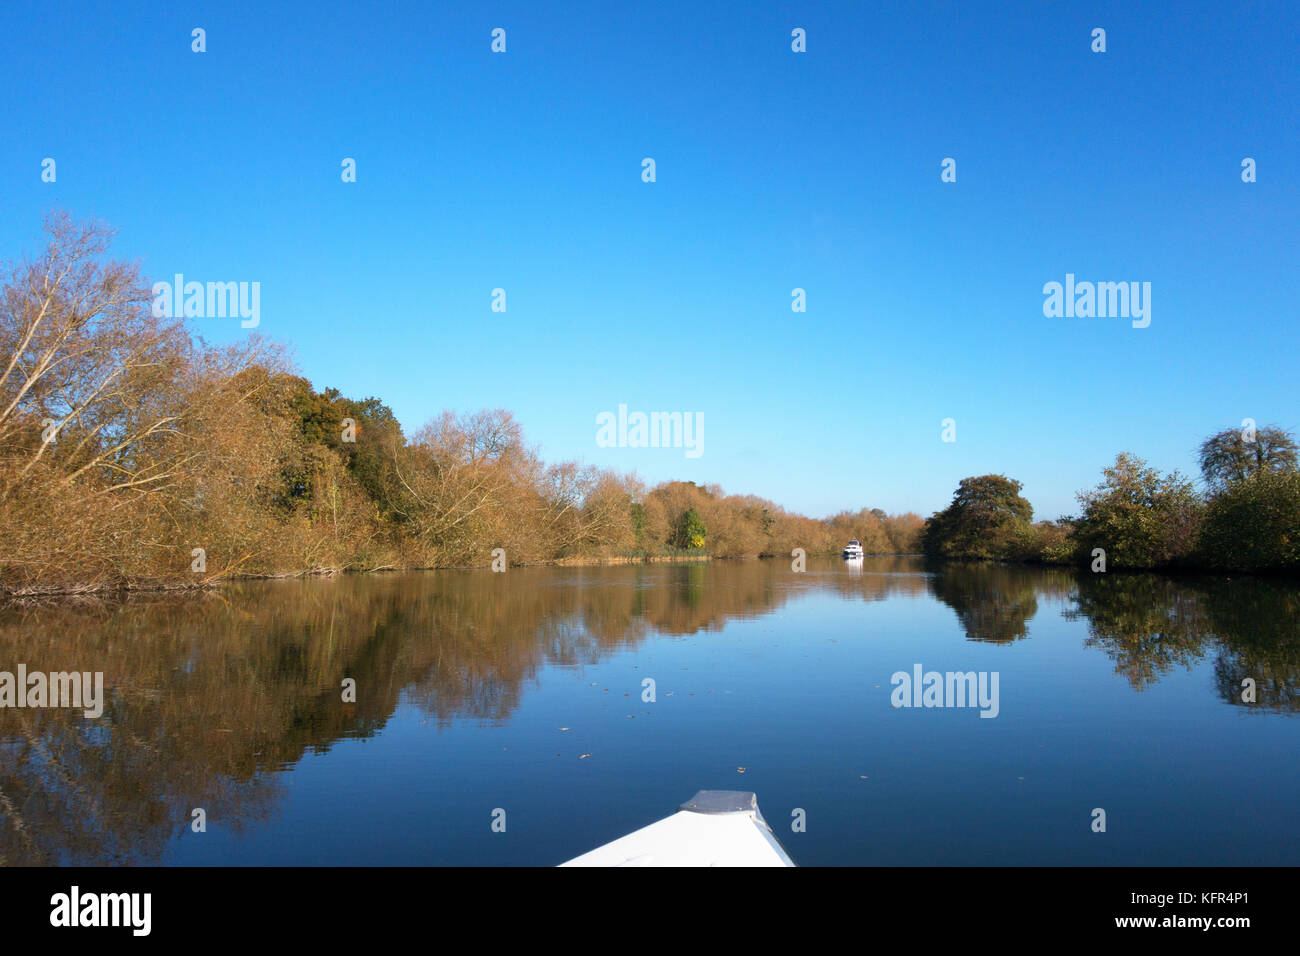 River Thames  Oxfordshire on a bright autumn day with blue sky and sunshine, Moulsford, Oxfordshire UK - Stock Image